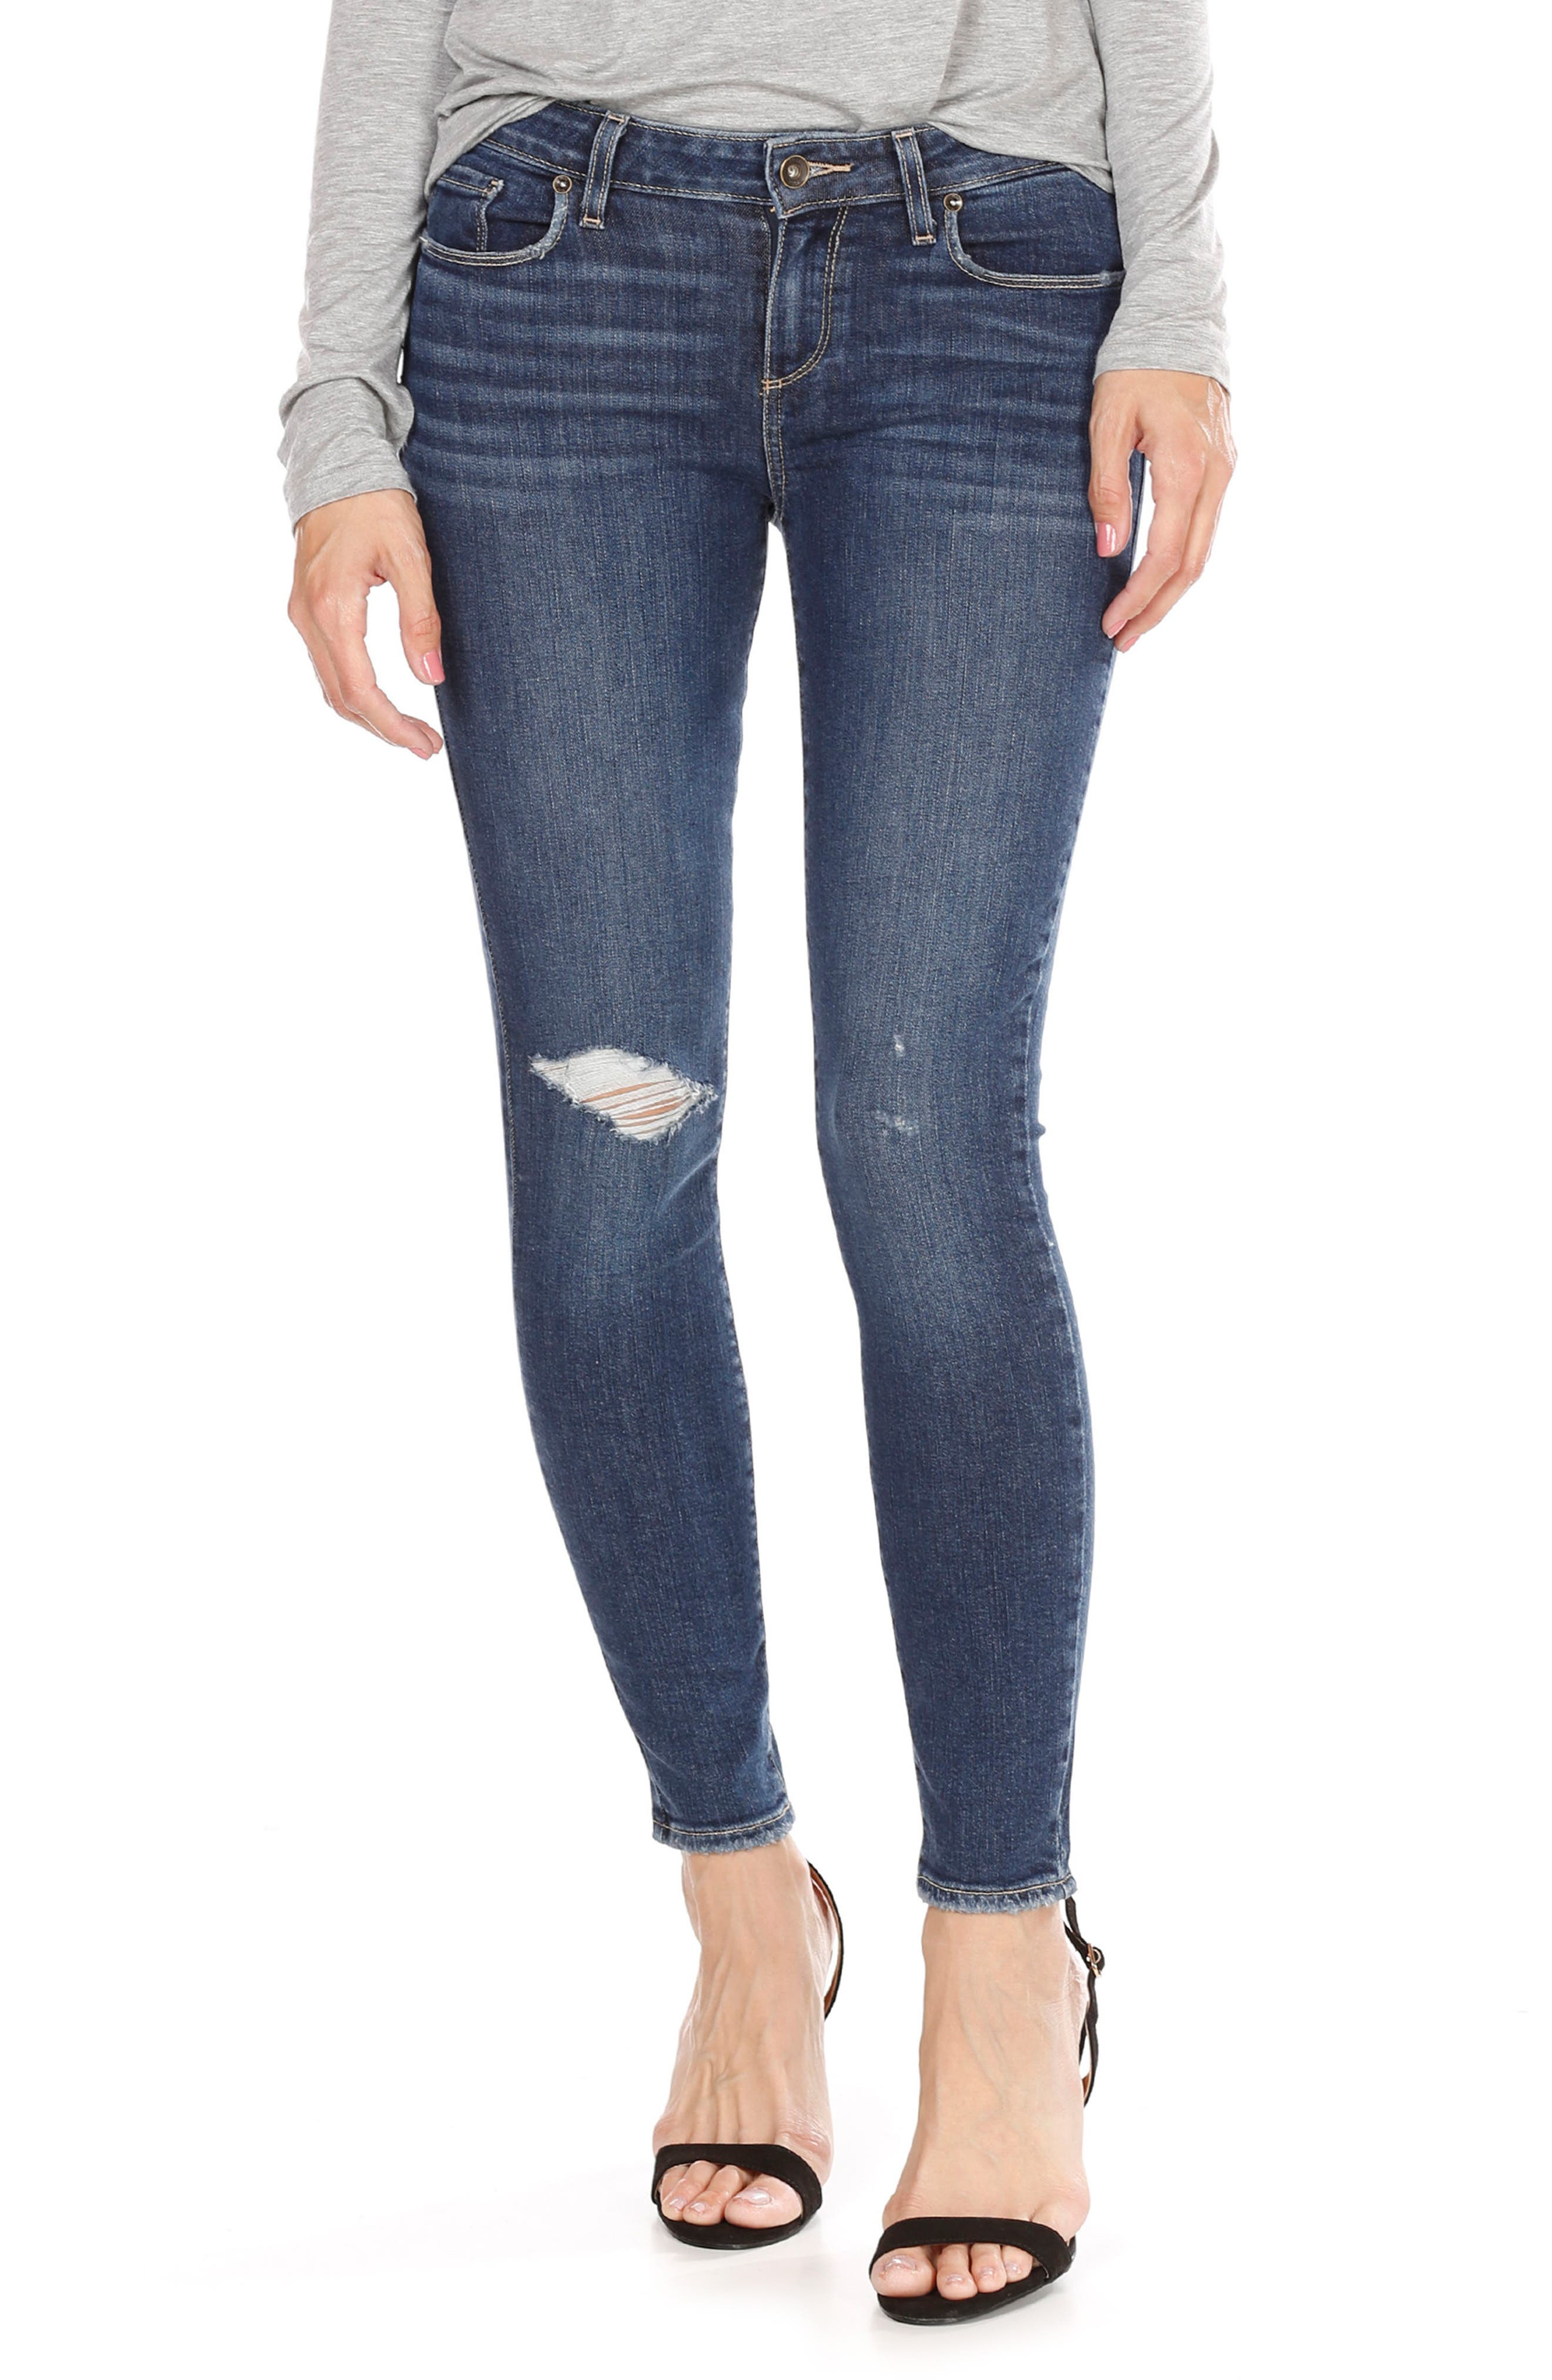 Verdugo Ripped Ankle Skinny Jeans,                         Main,                         color, Addax Destructed